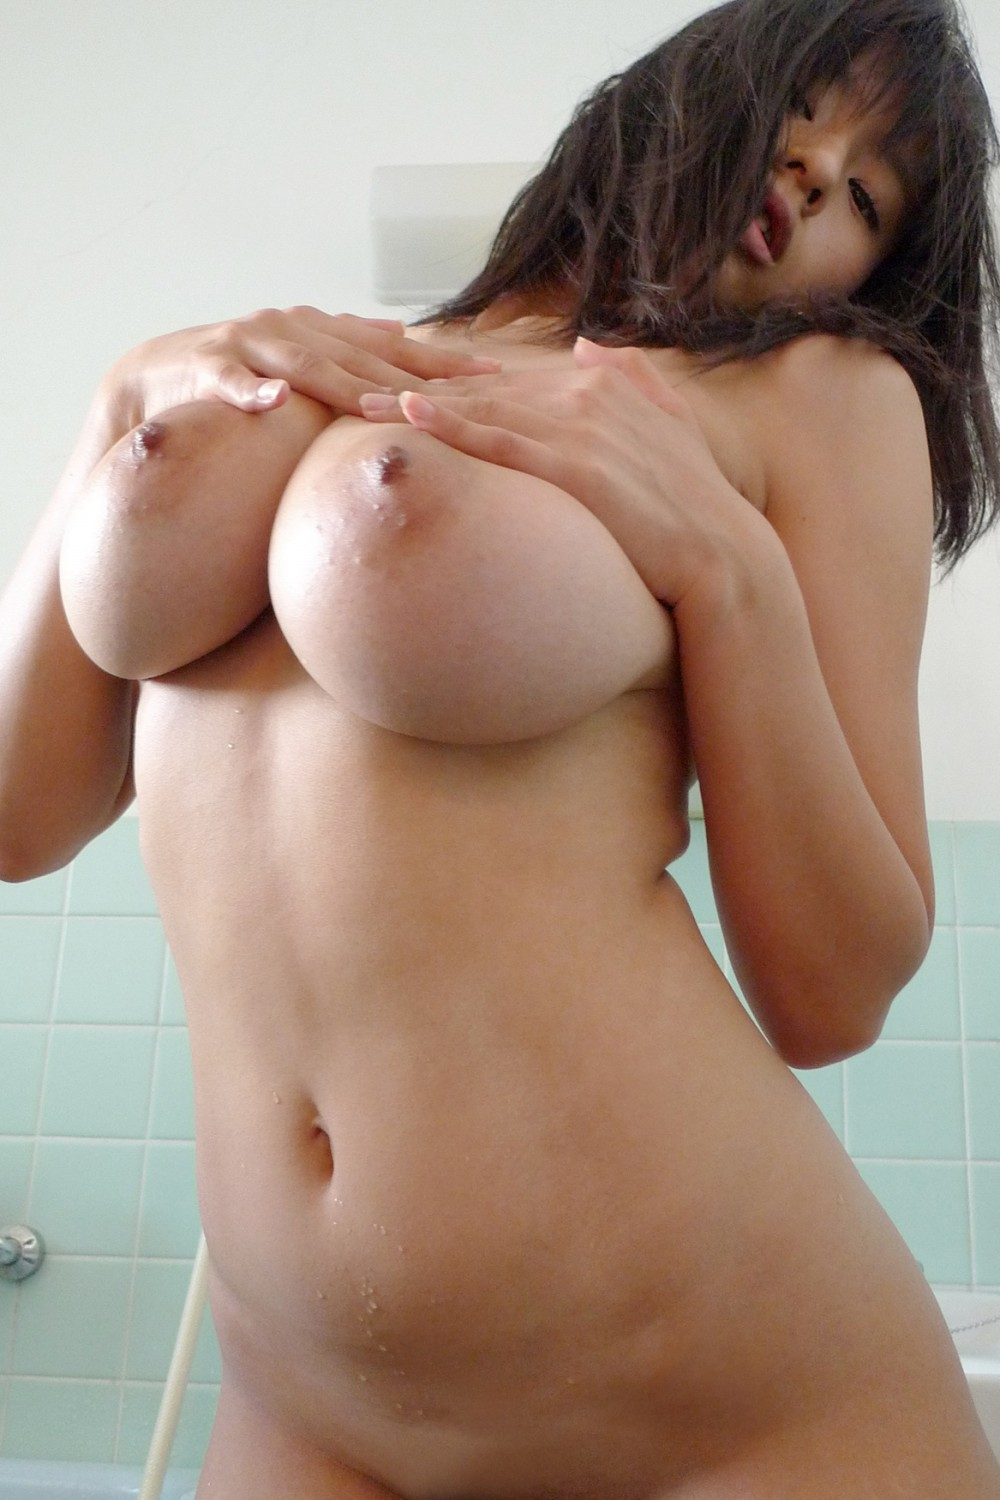 Cute love japan natural photo nude shower